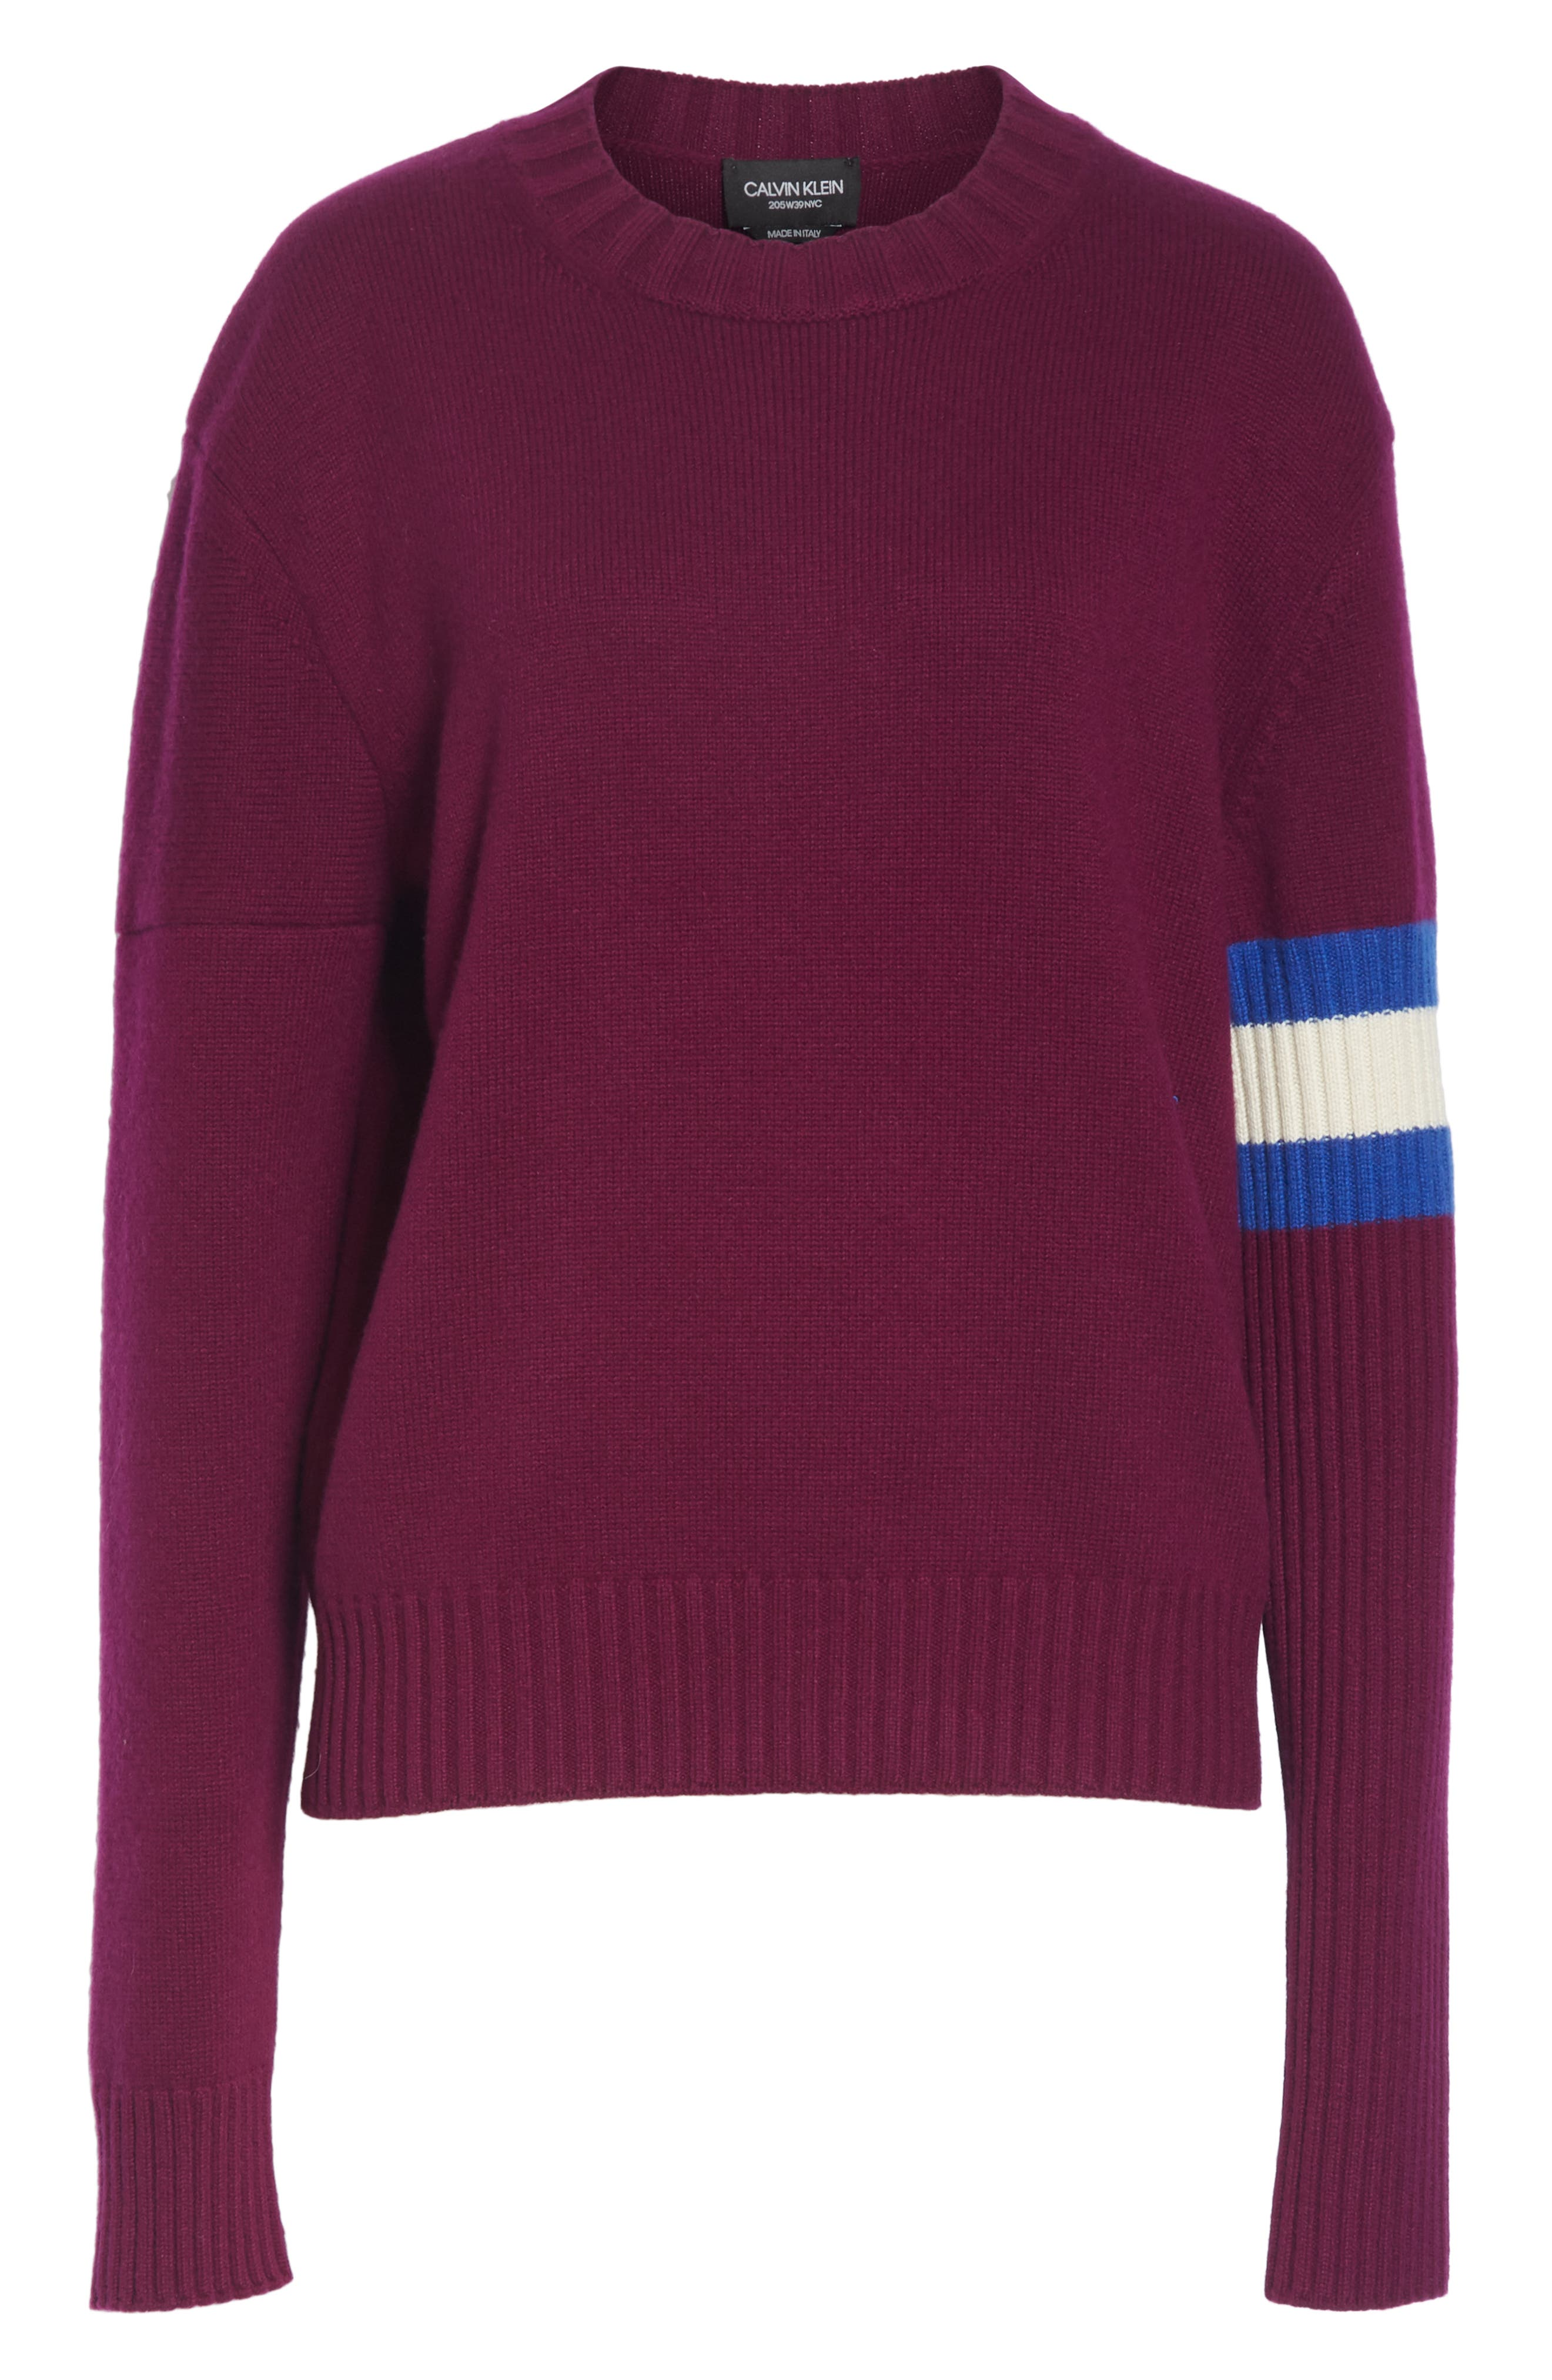 Cashmere Stripe Sleeve Sweater,                             Alternate thumbnail 6, color,                             DEEP PURPLE BRIGHT BLUE WHITE